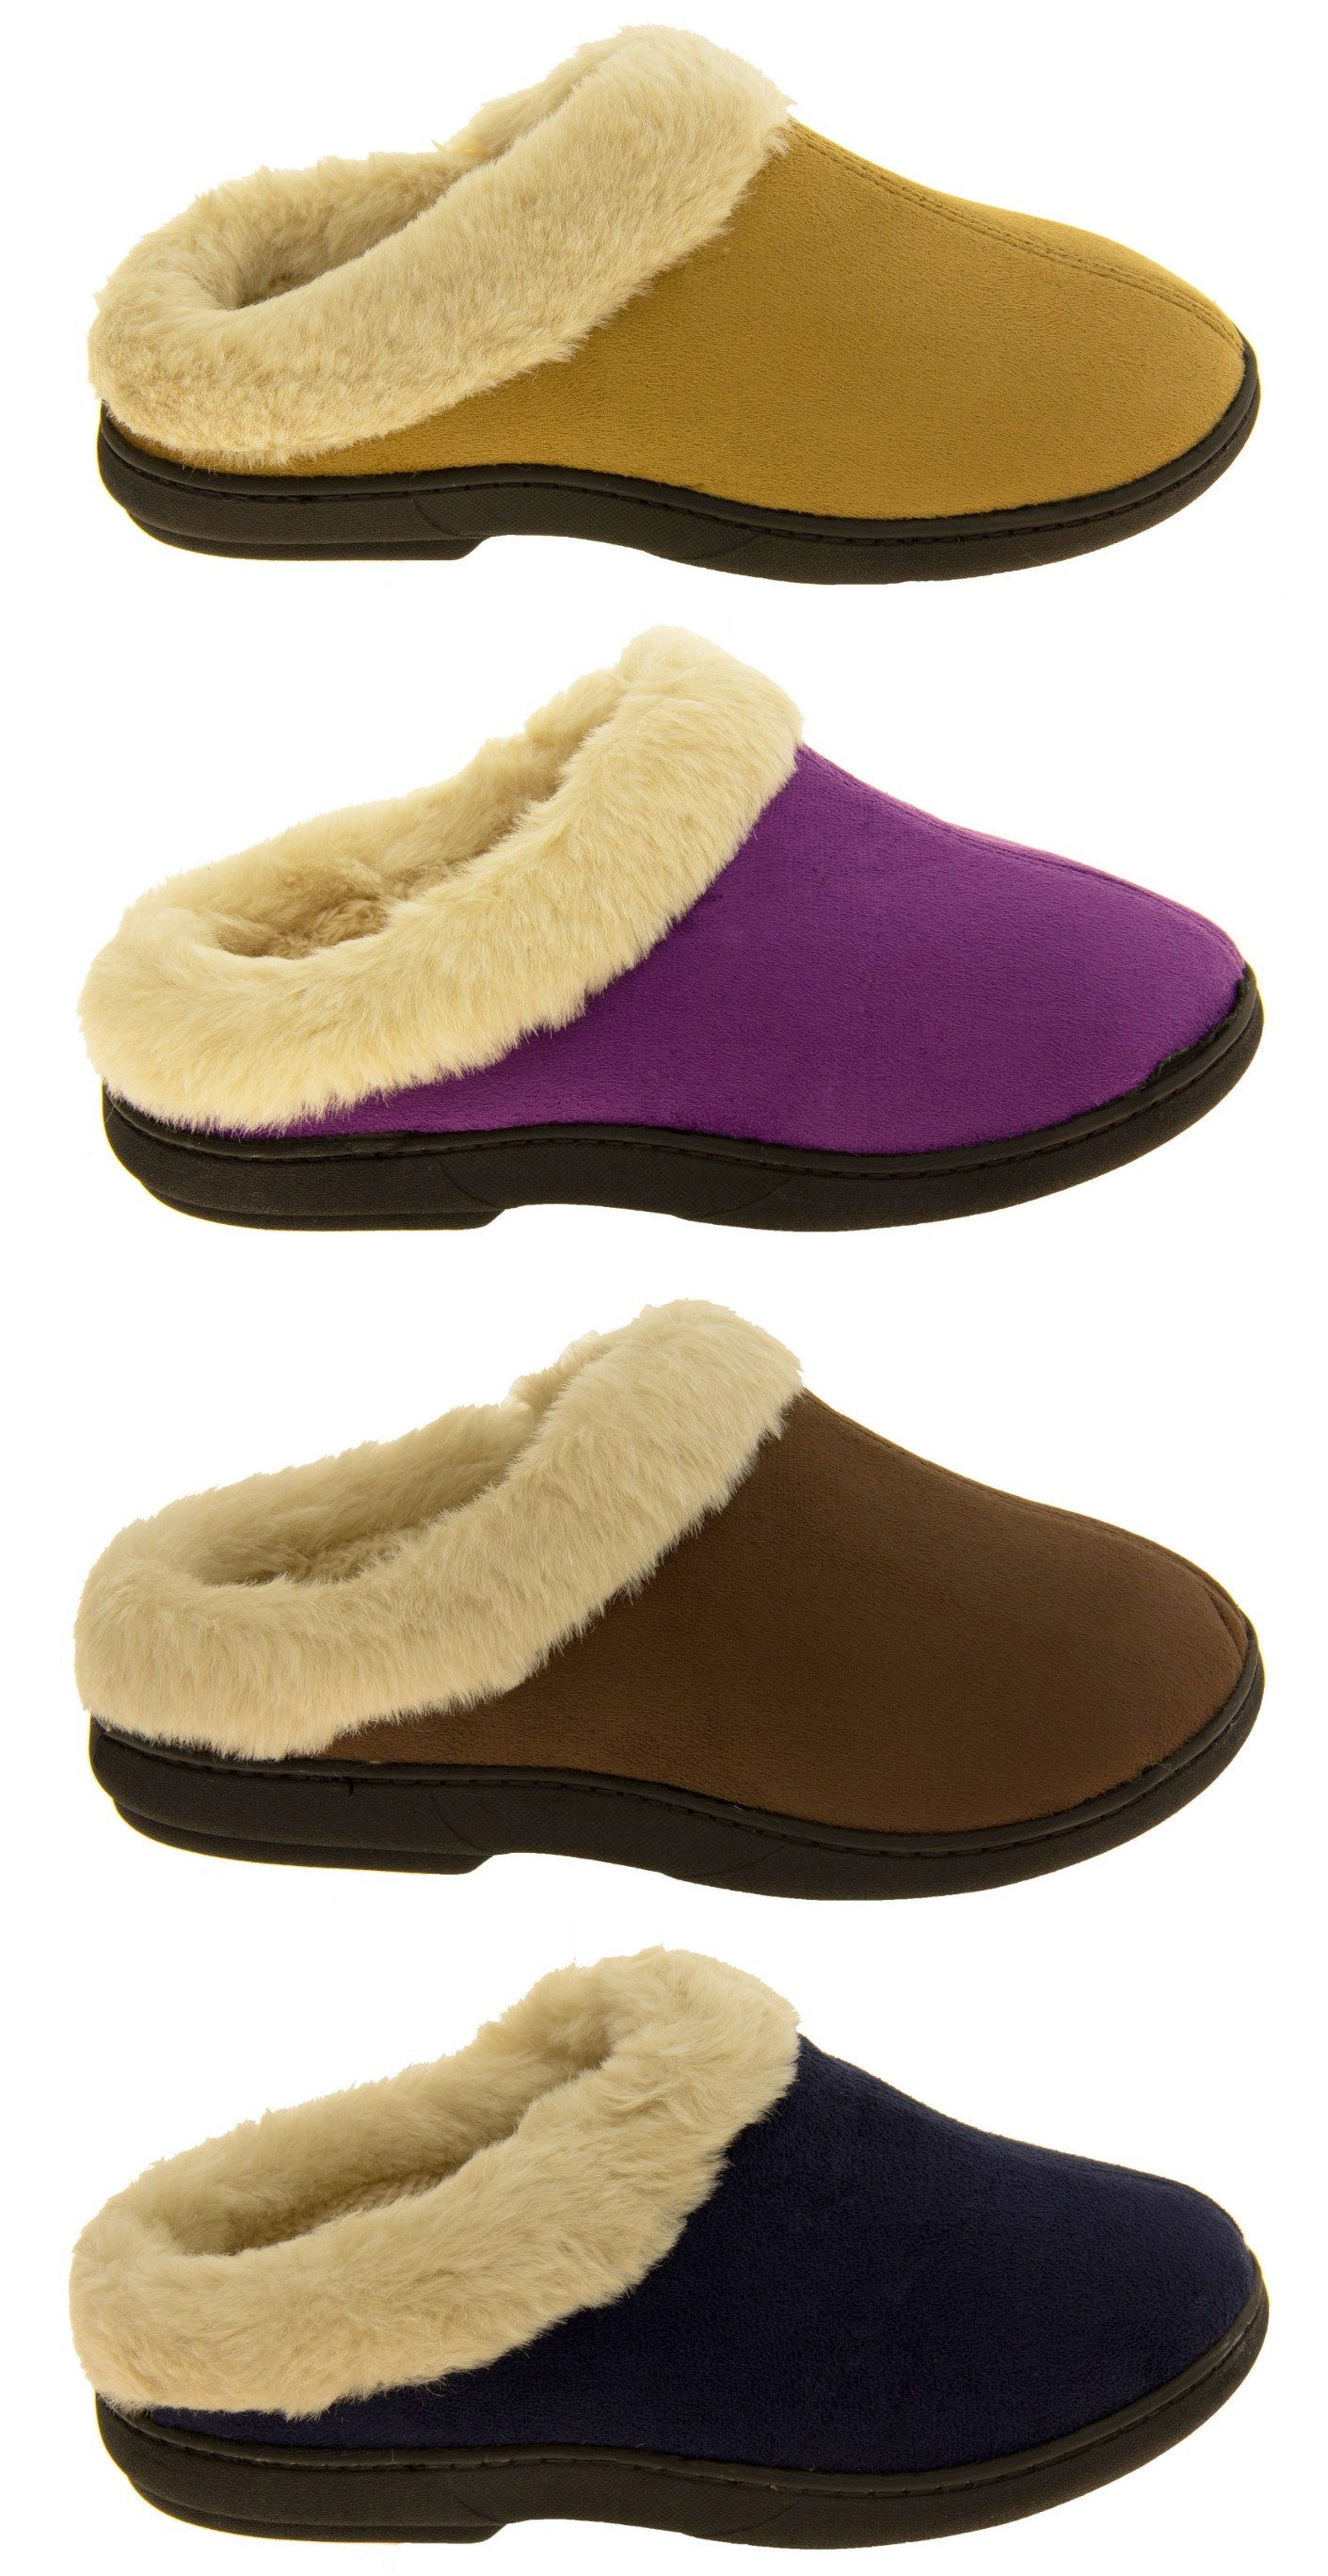 M US Coolers Womens Brown Synthetic Fur Lined Slippers 9 B